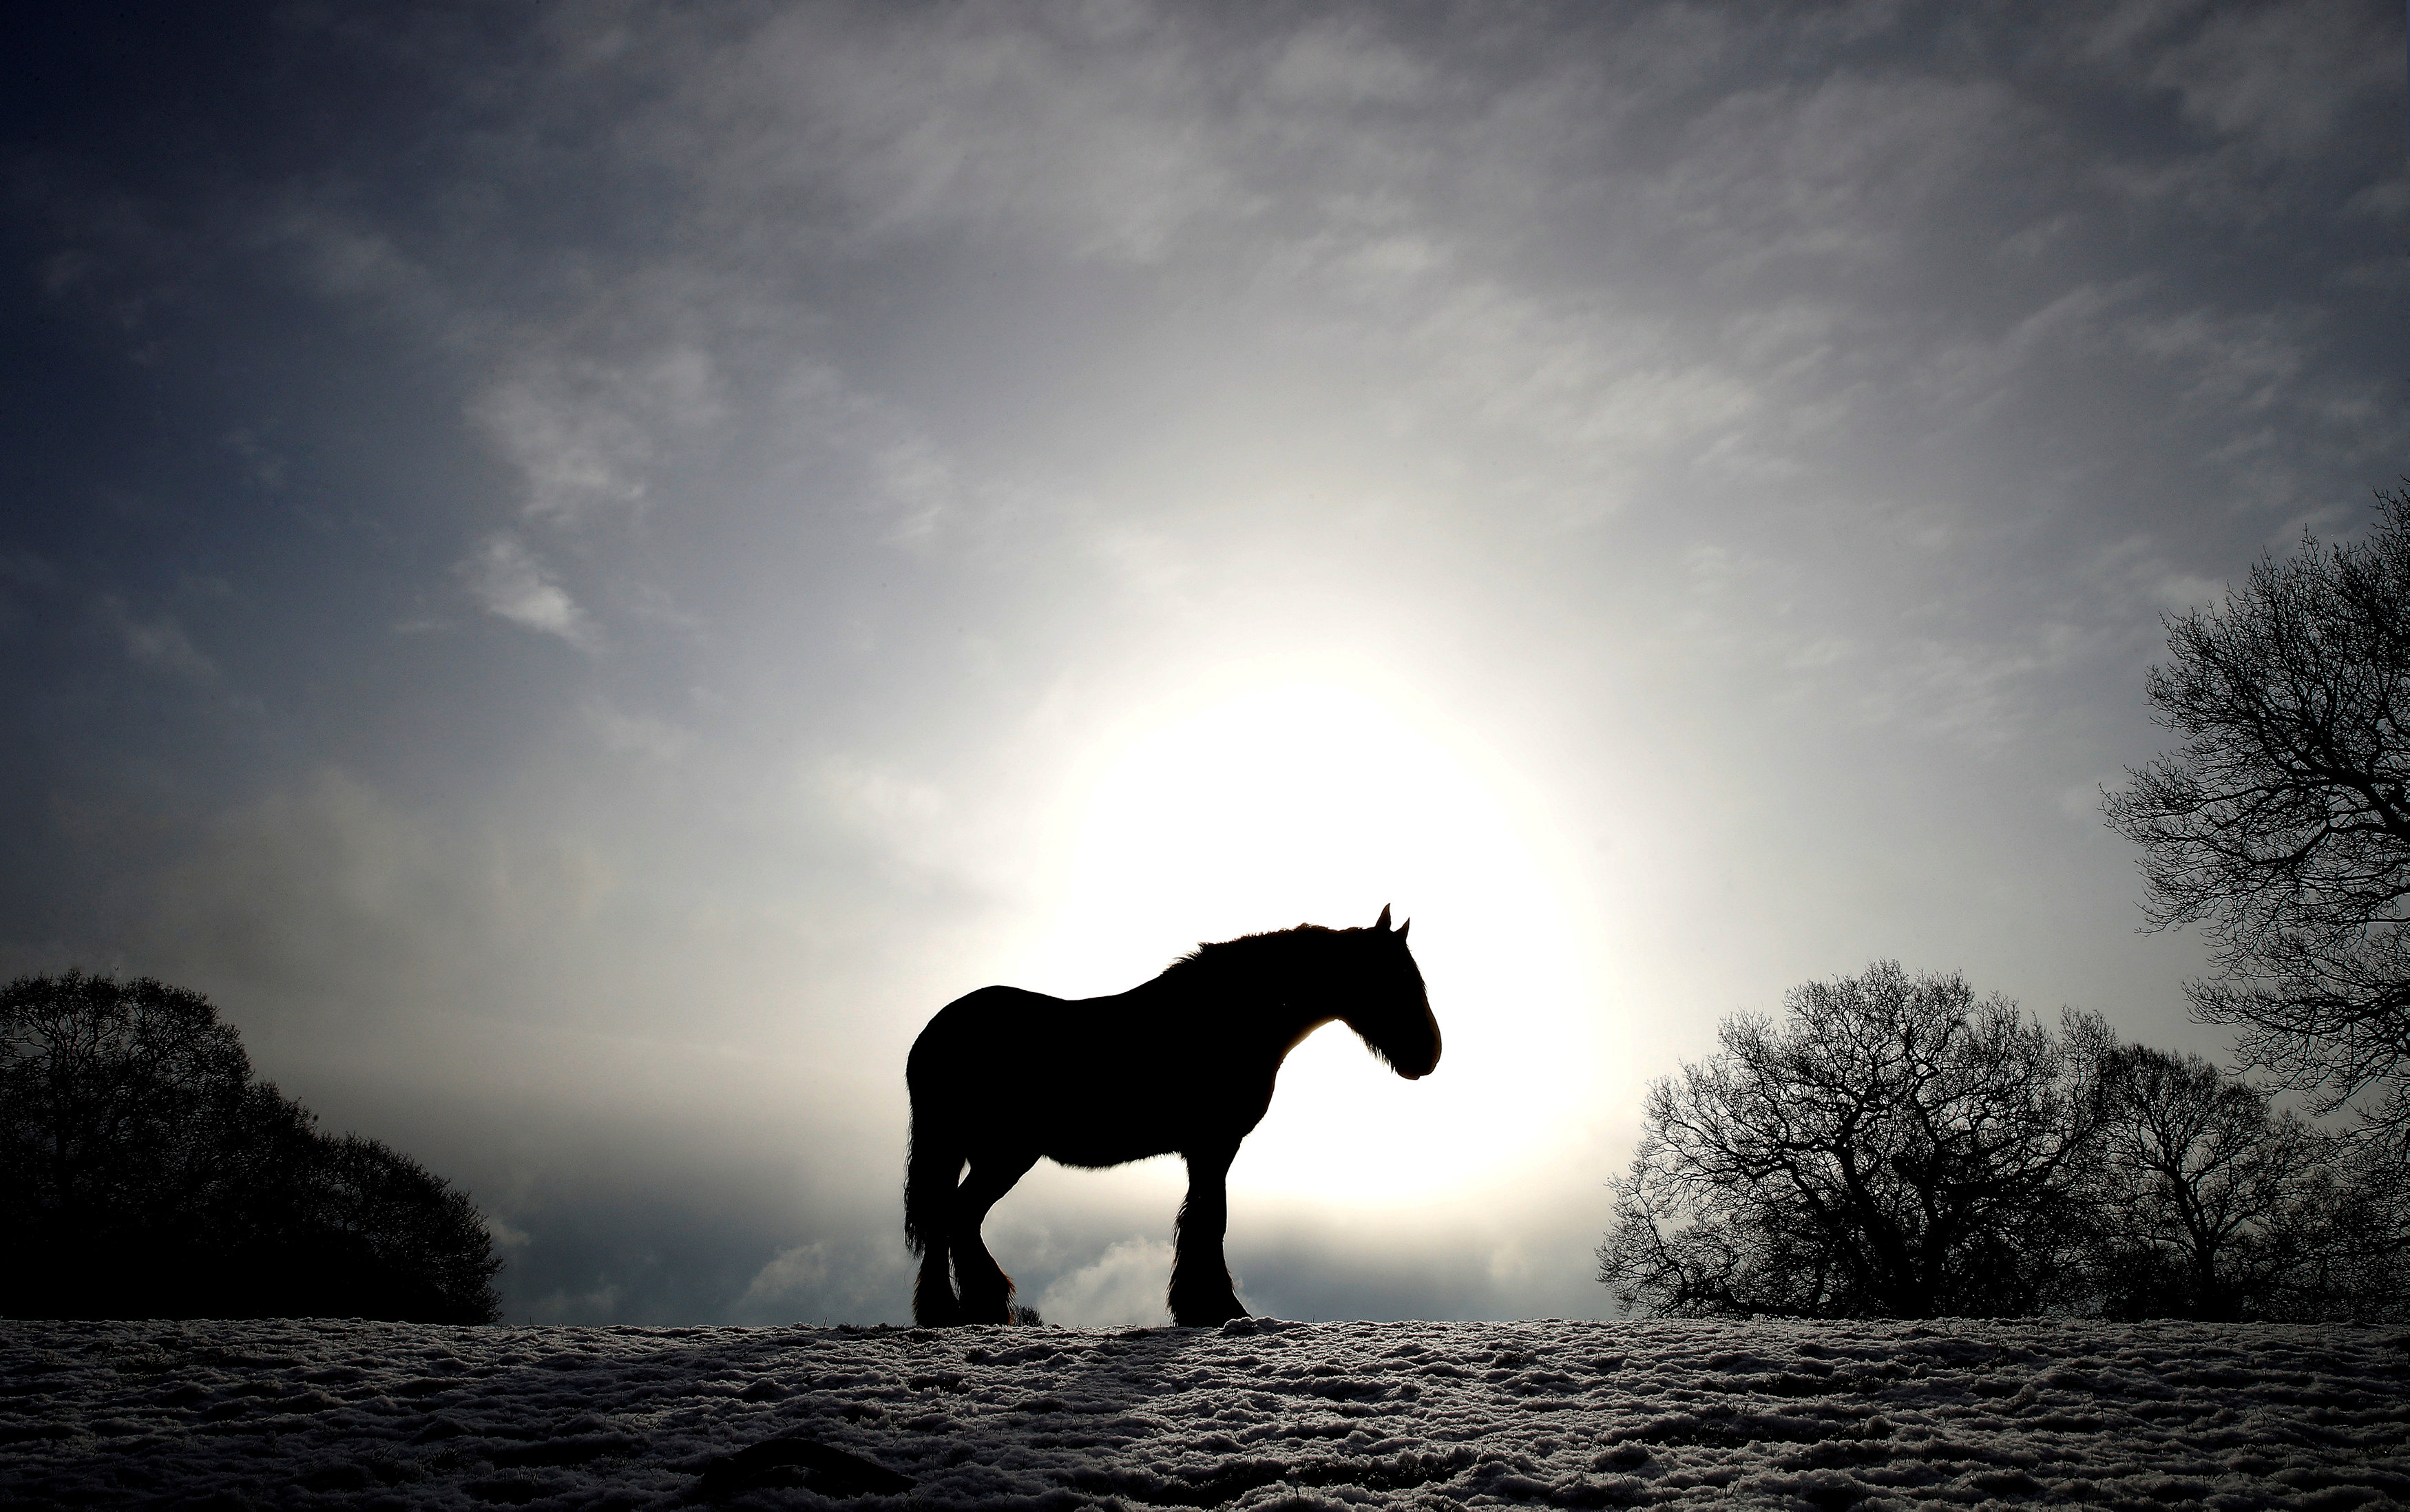 Un caballo en Keele, Newcastle-under-Lyme, Reino Unido (REUTERS/Carl Recine)